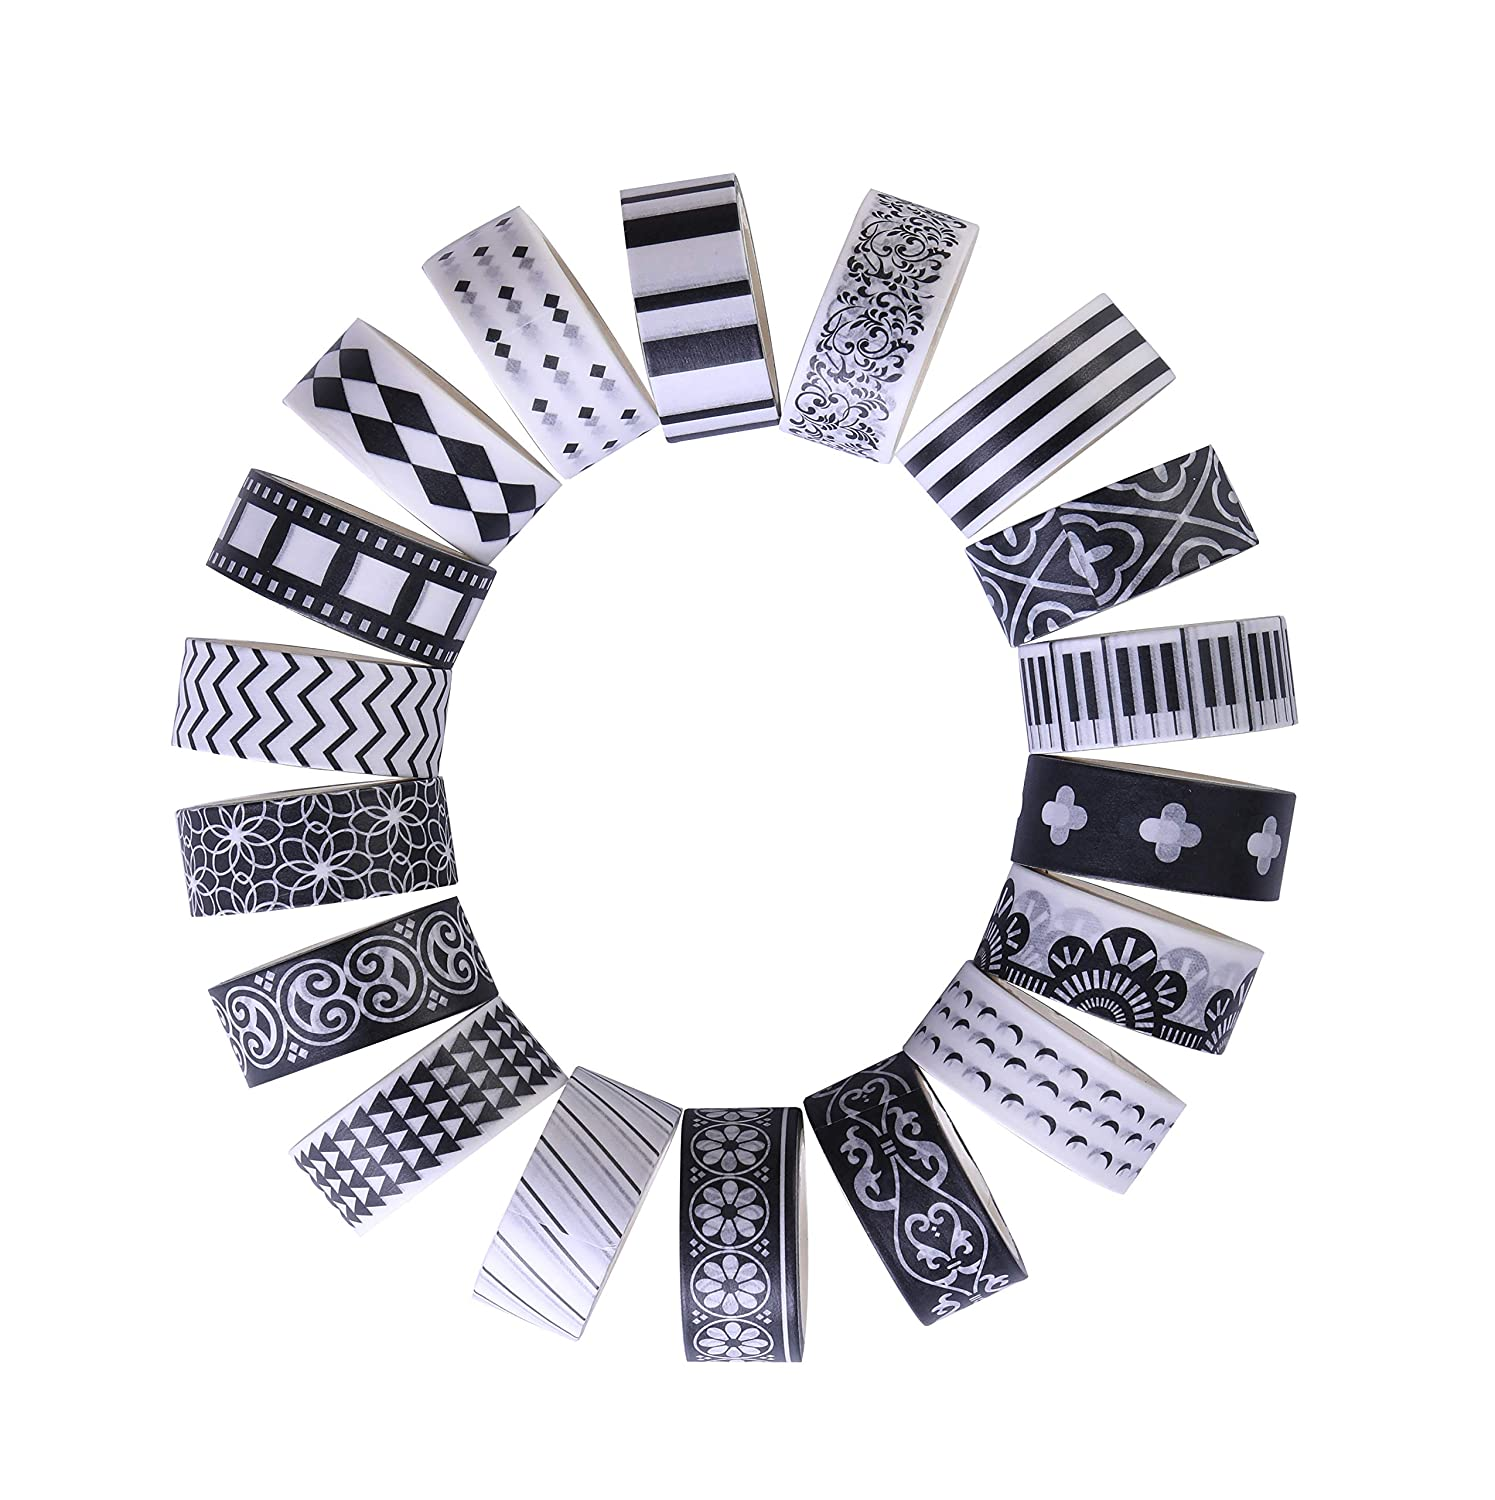 27 Rolls Washi Masking Tape Set, Classic Black and White Decorative Washi Masking Tape,Decorative Special Design Washi Craft Tape for DIY Crafts Book Designs, Great for Festivals and Party LEOTER